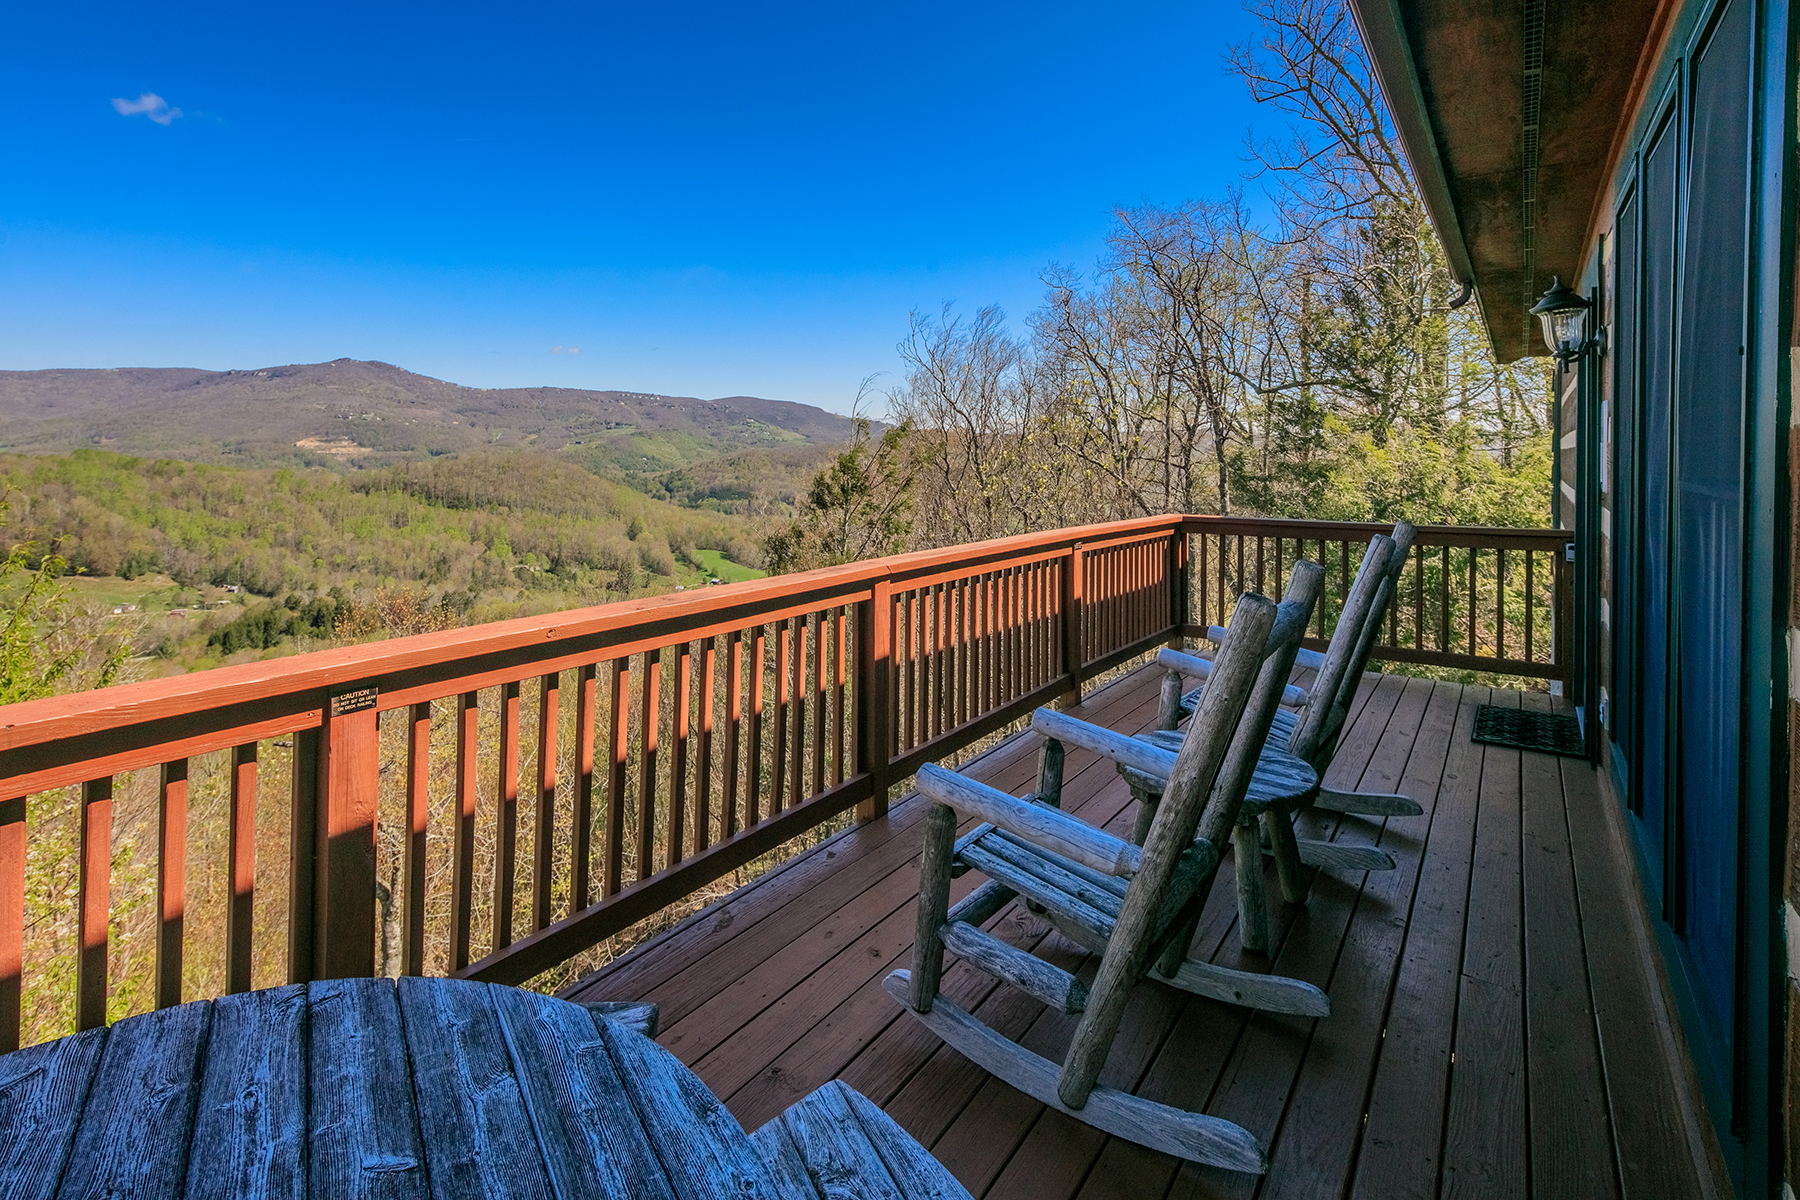 Single Family Home for Sale at SUGAR MOUNTAIN 450 Crestview Ln Sugar Mountain, North Carolina, 28604 United States